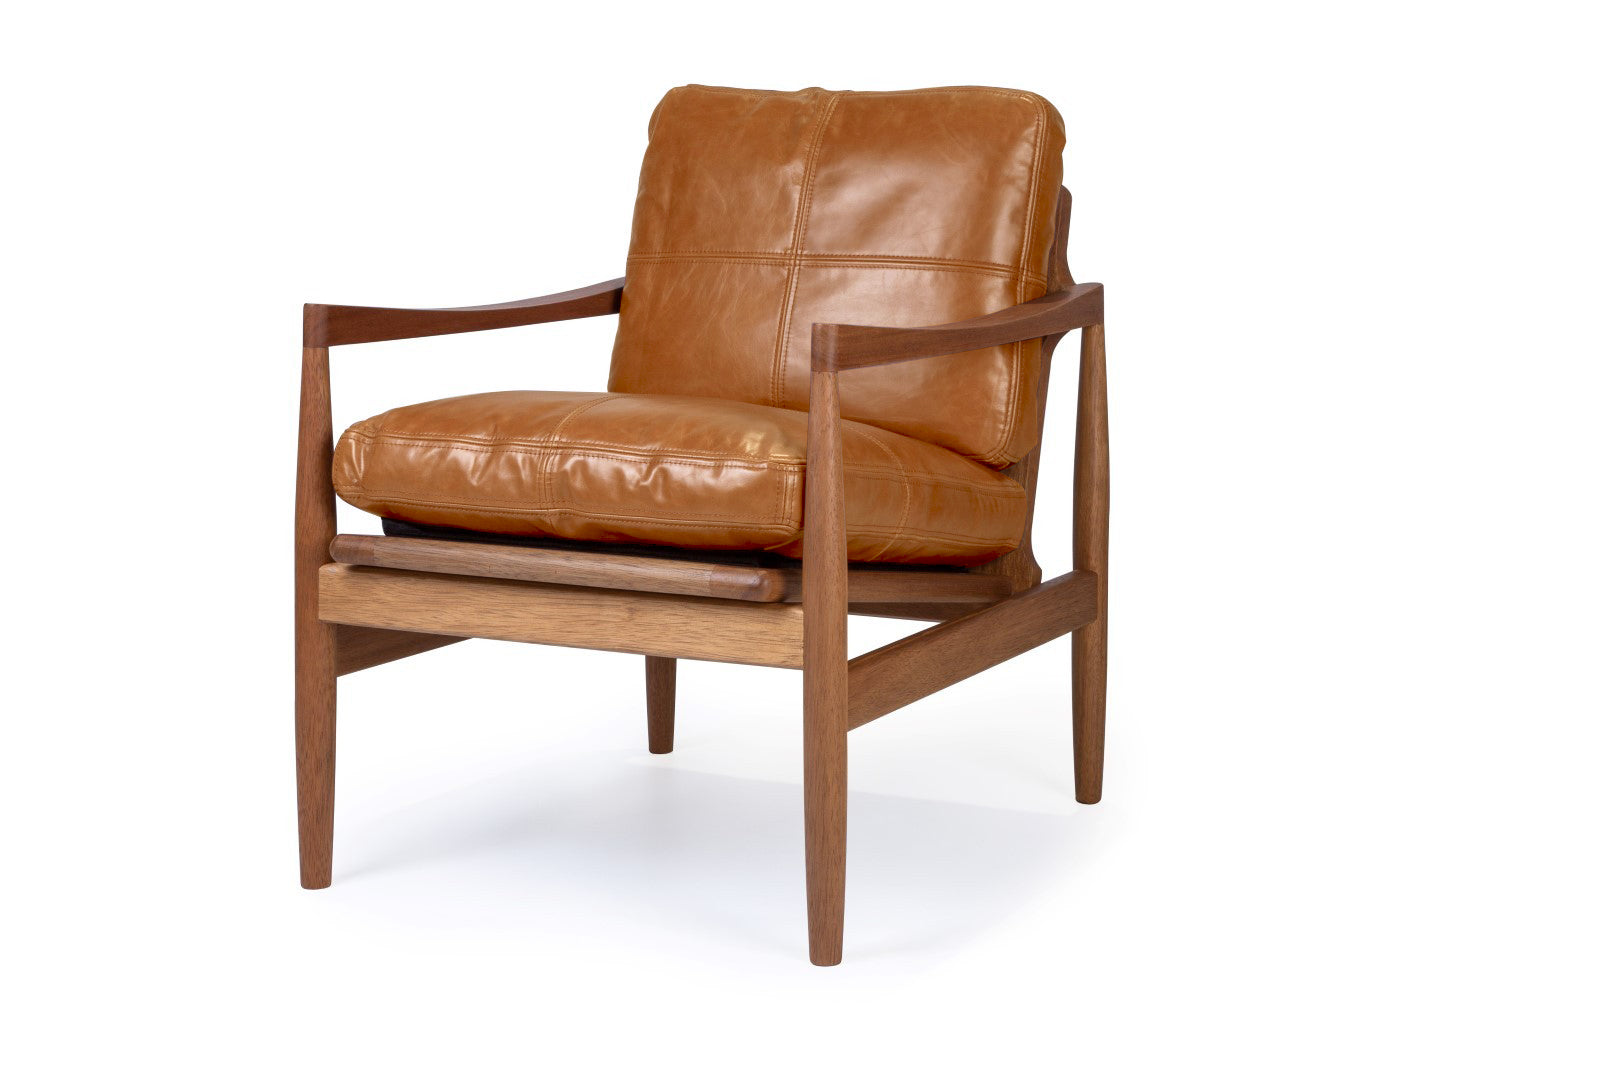 Den arm chair tan leather